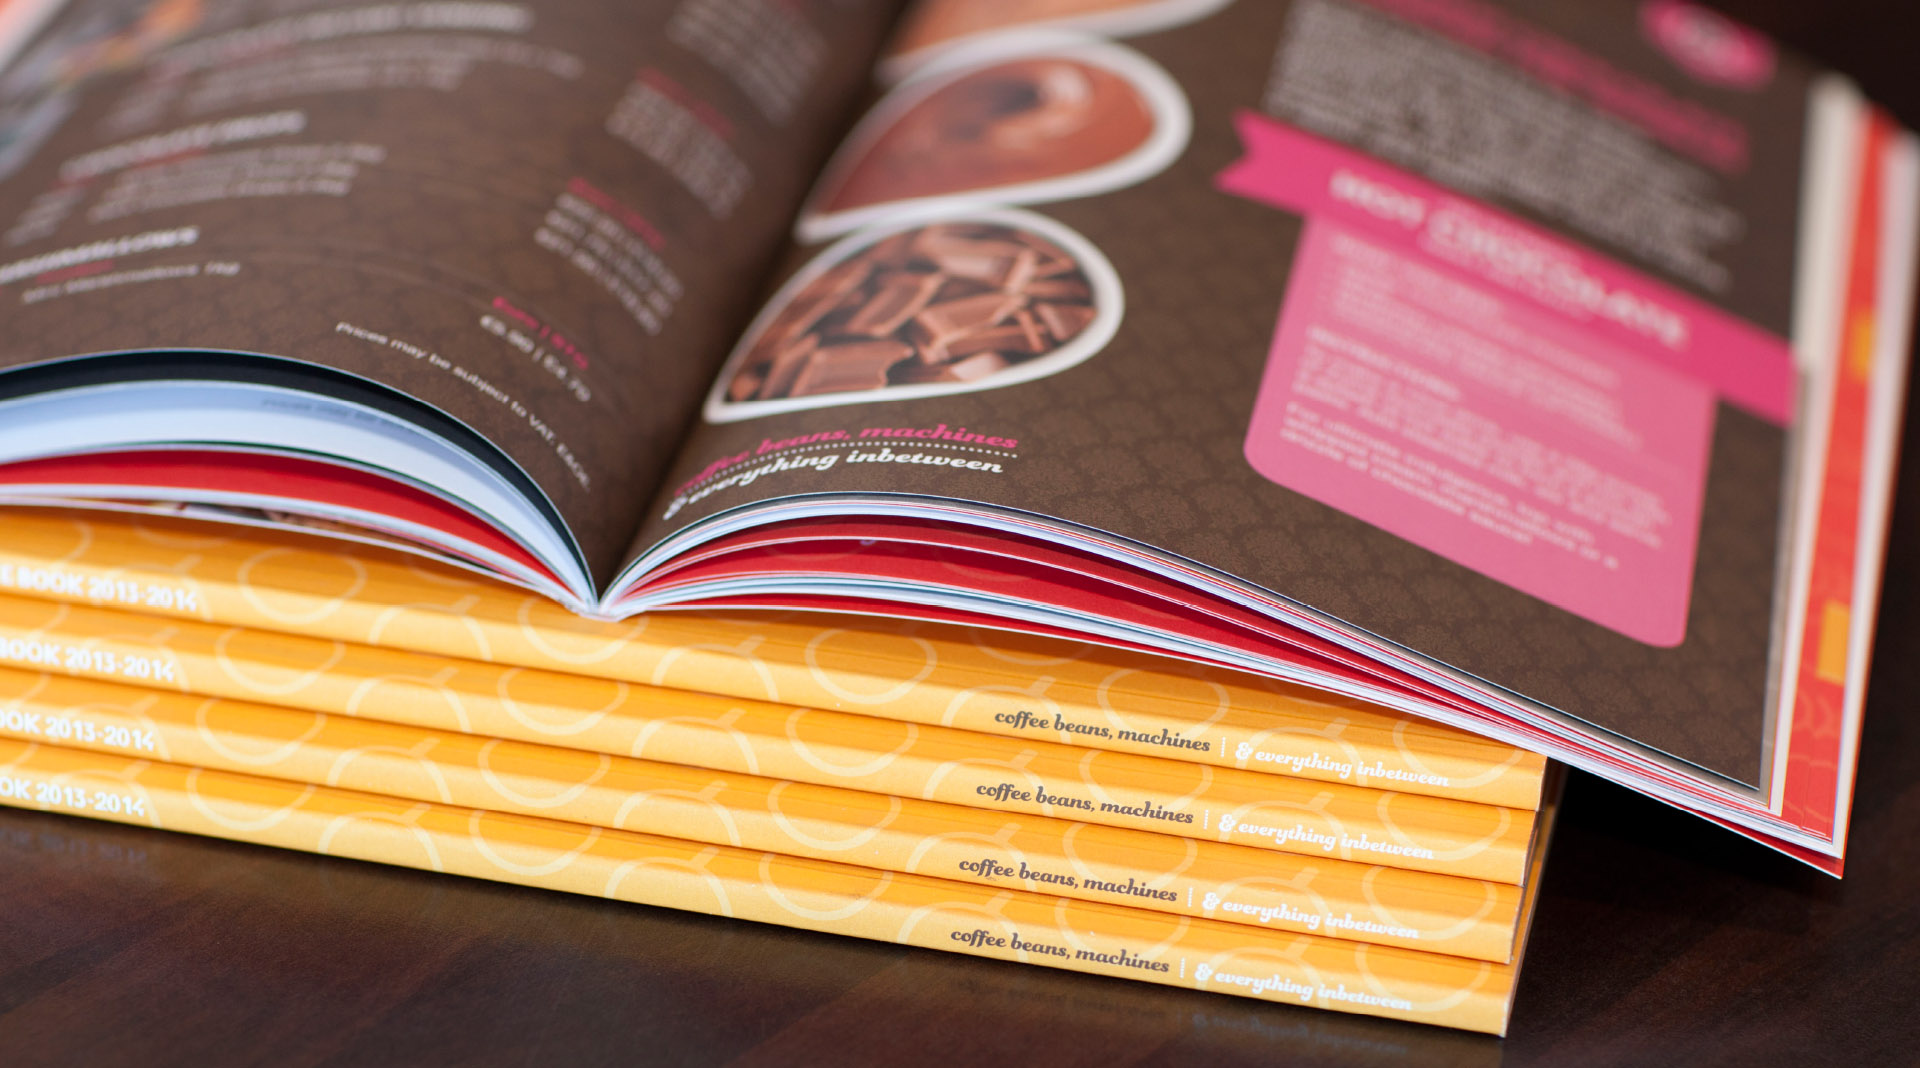 Pallas foods coffee book design spine detail